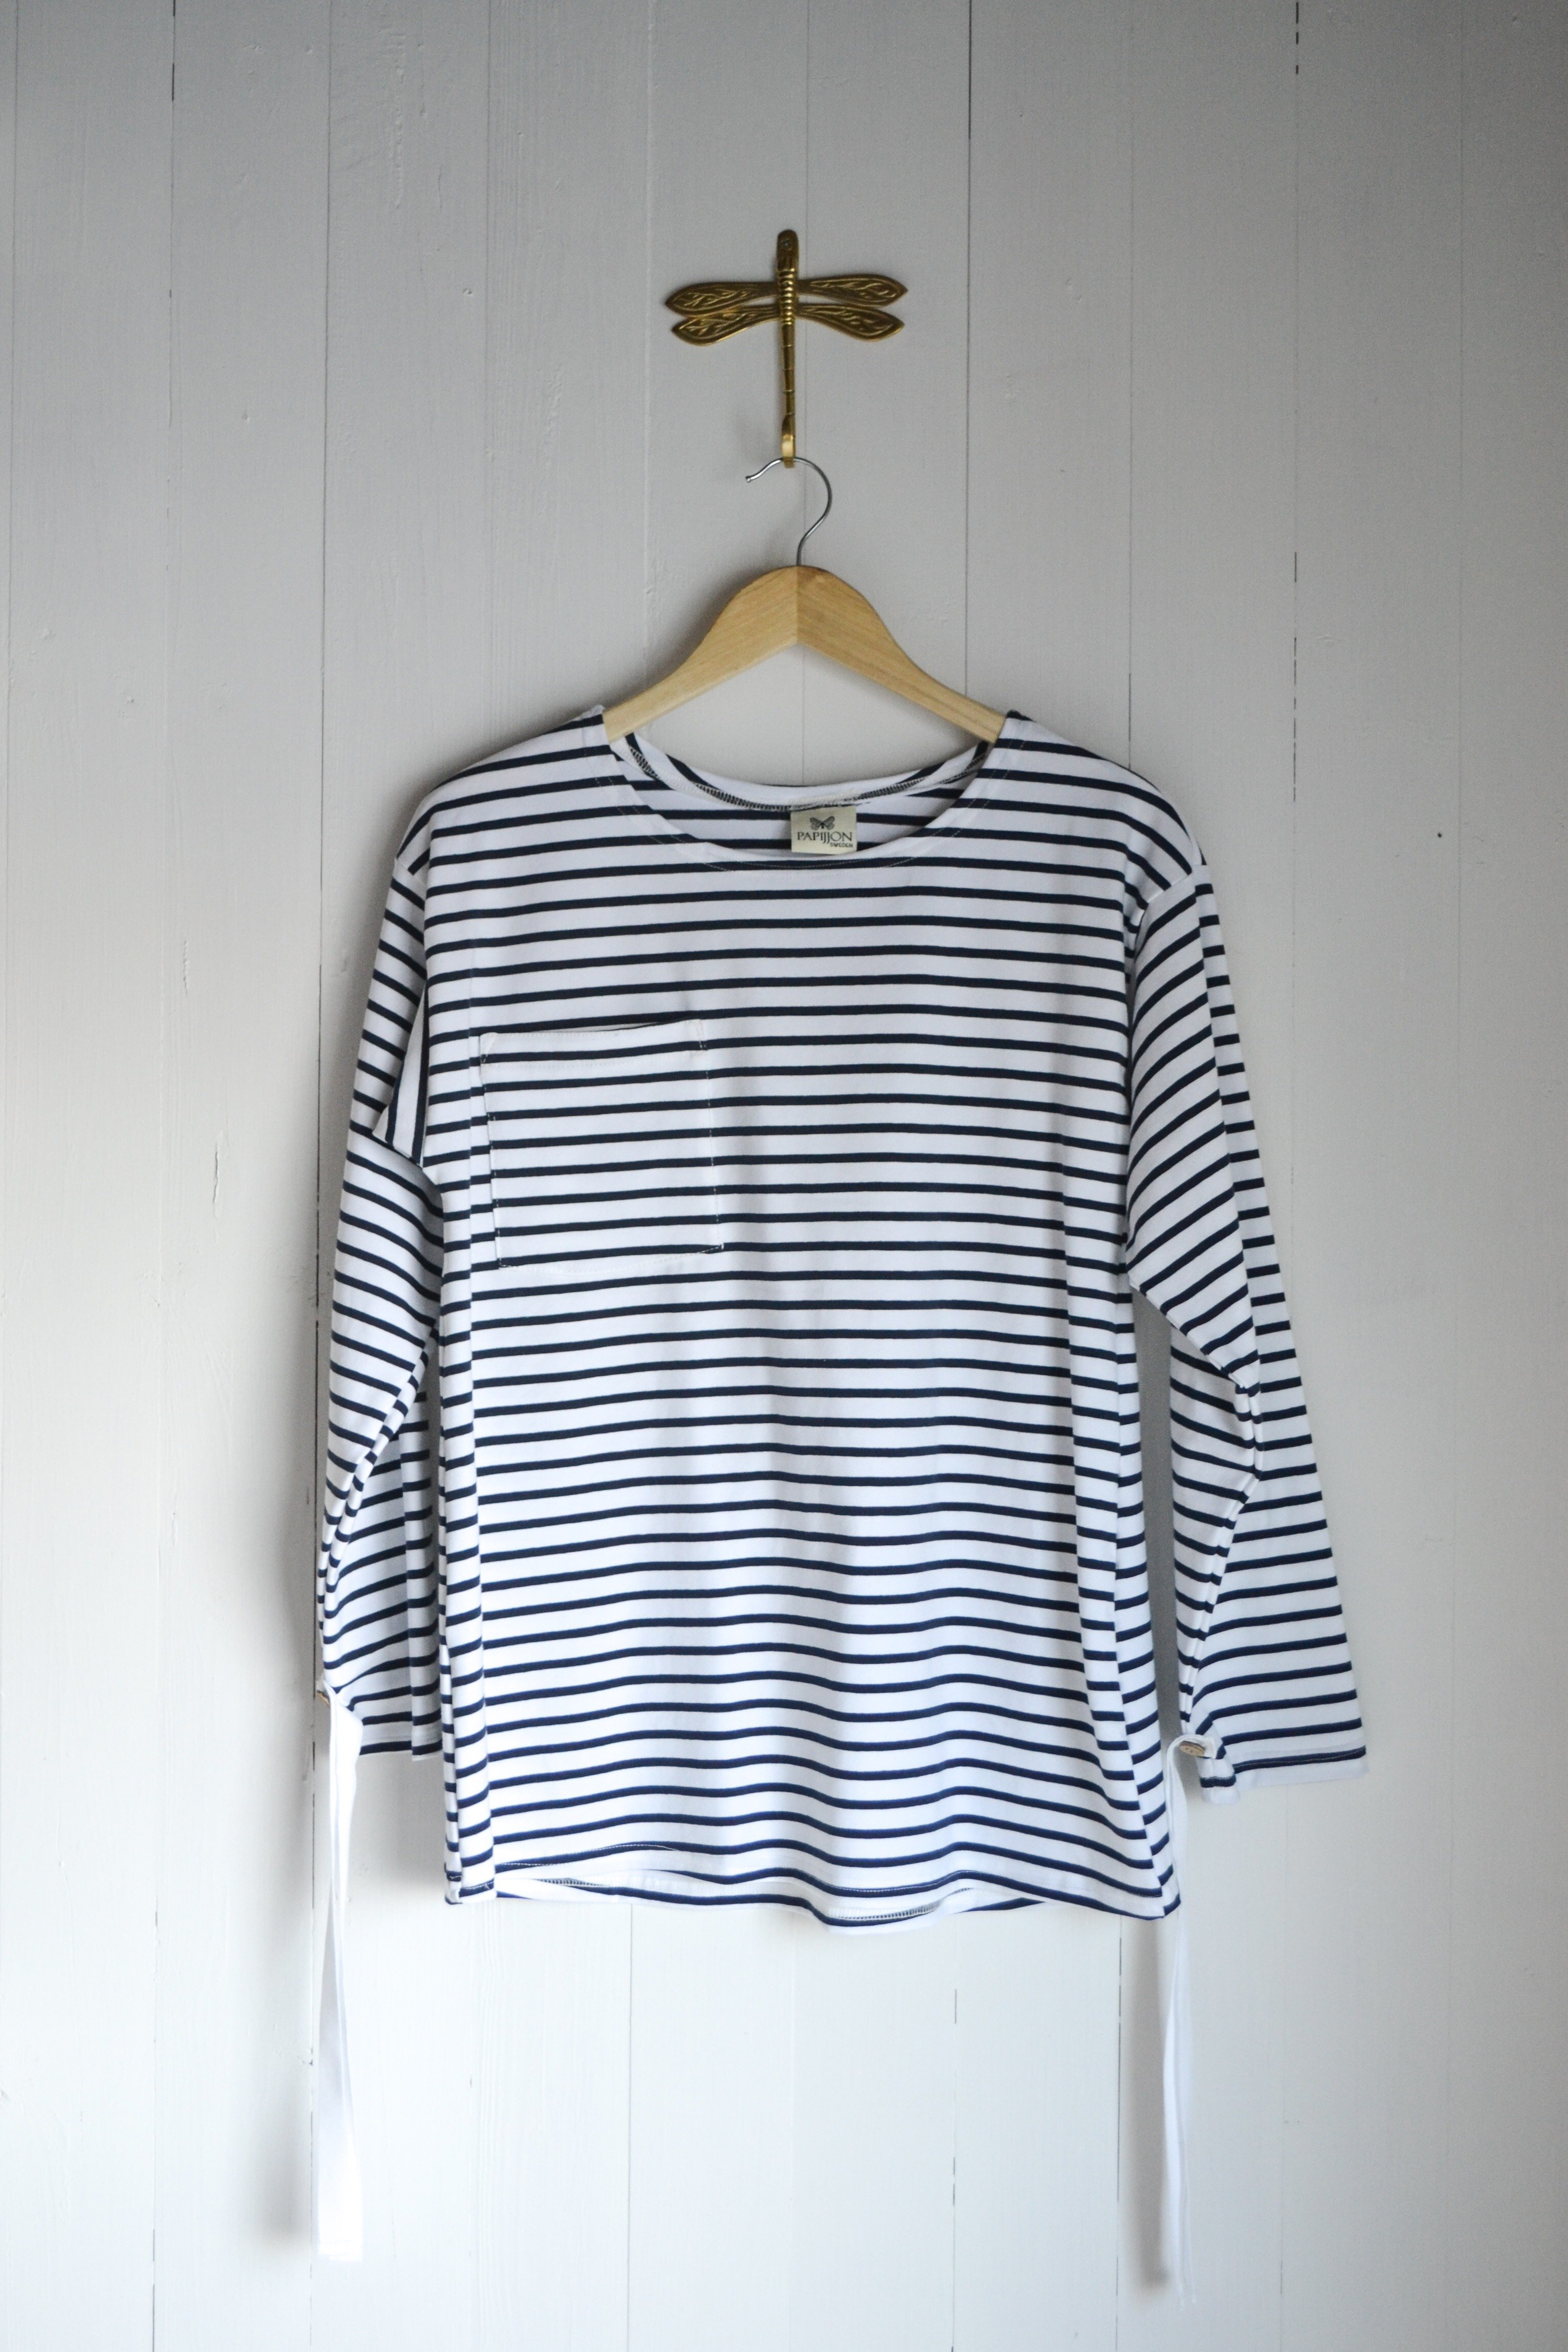 REMOVIBLE LONG SLEEVE TOP - BLUE AND WHITE STRIPES